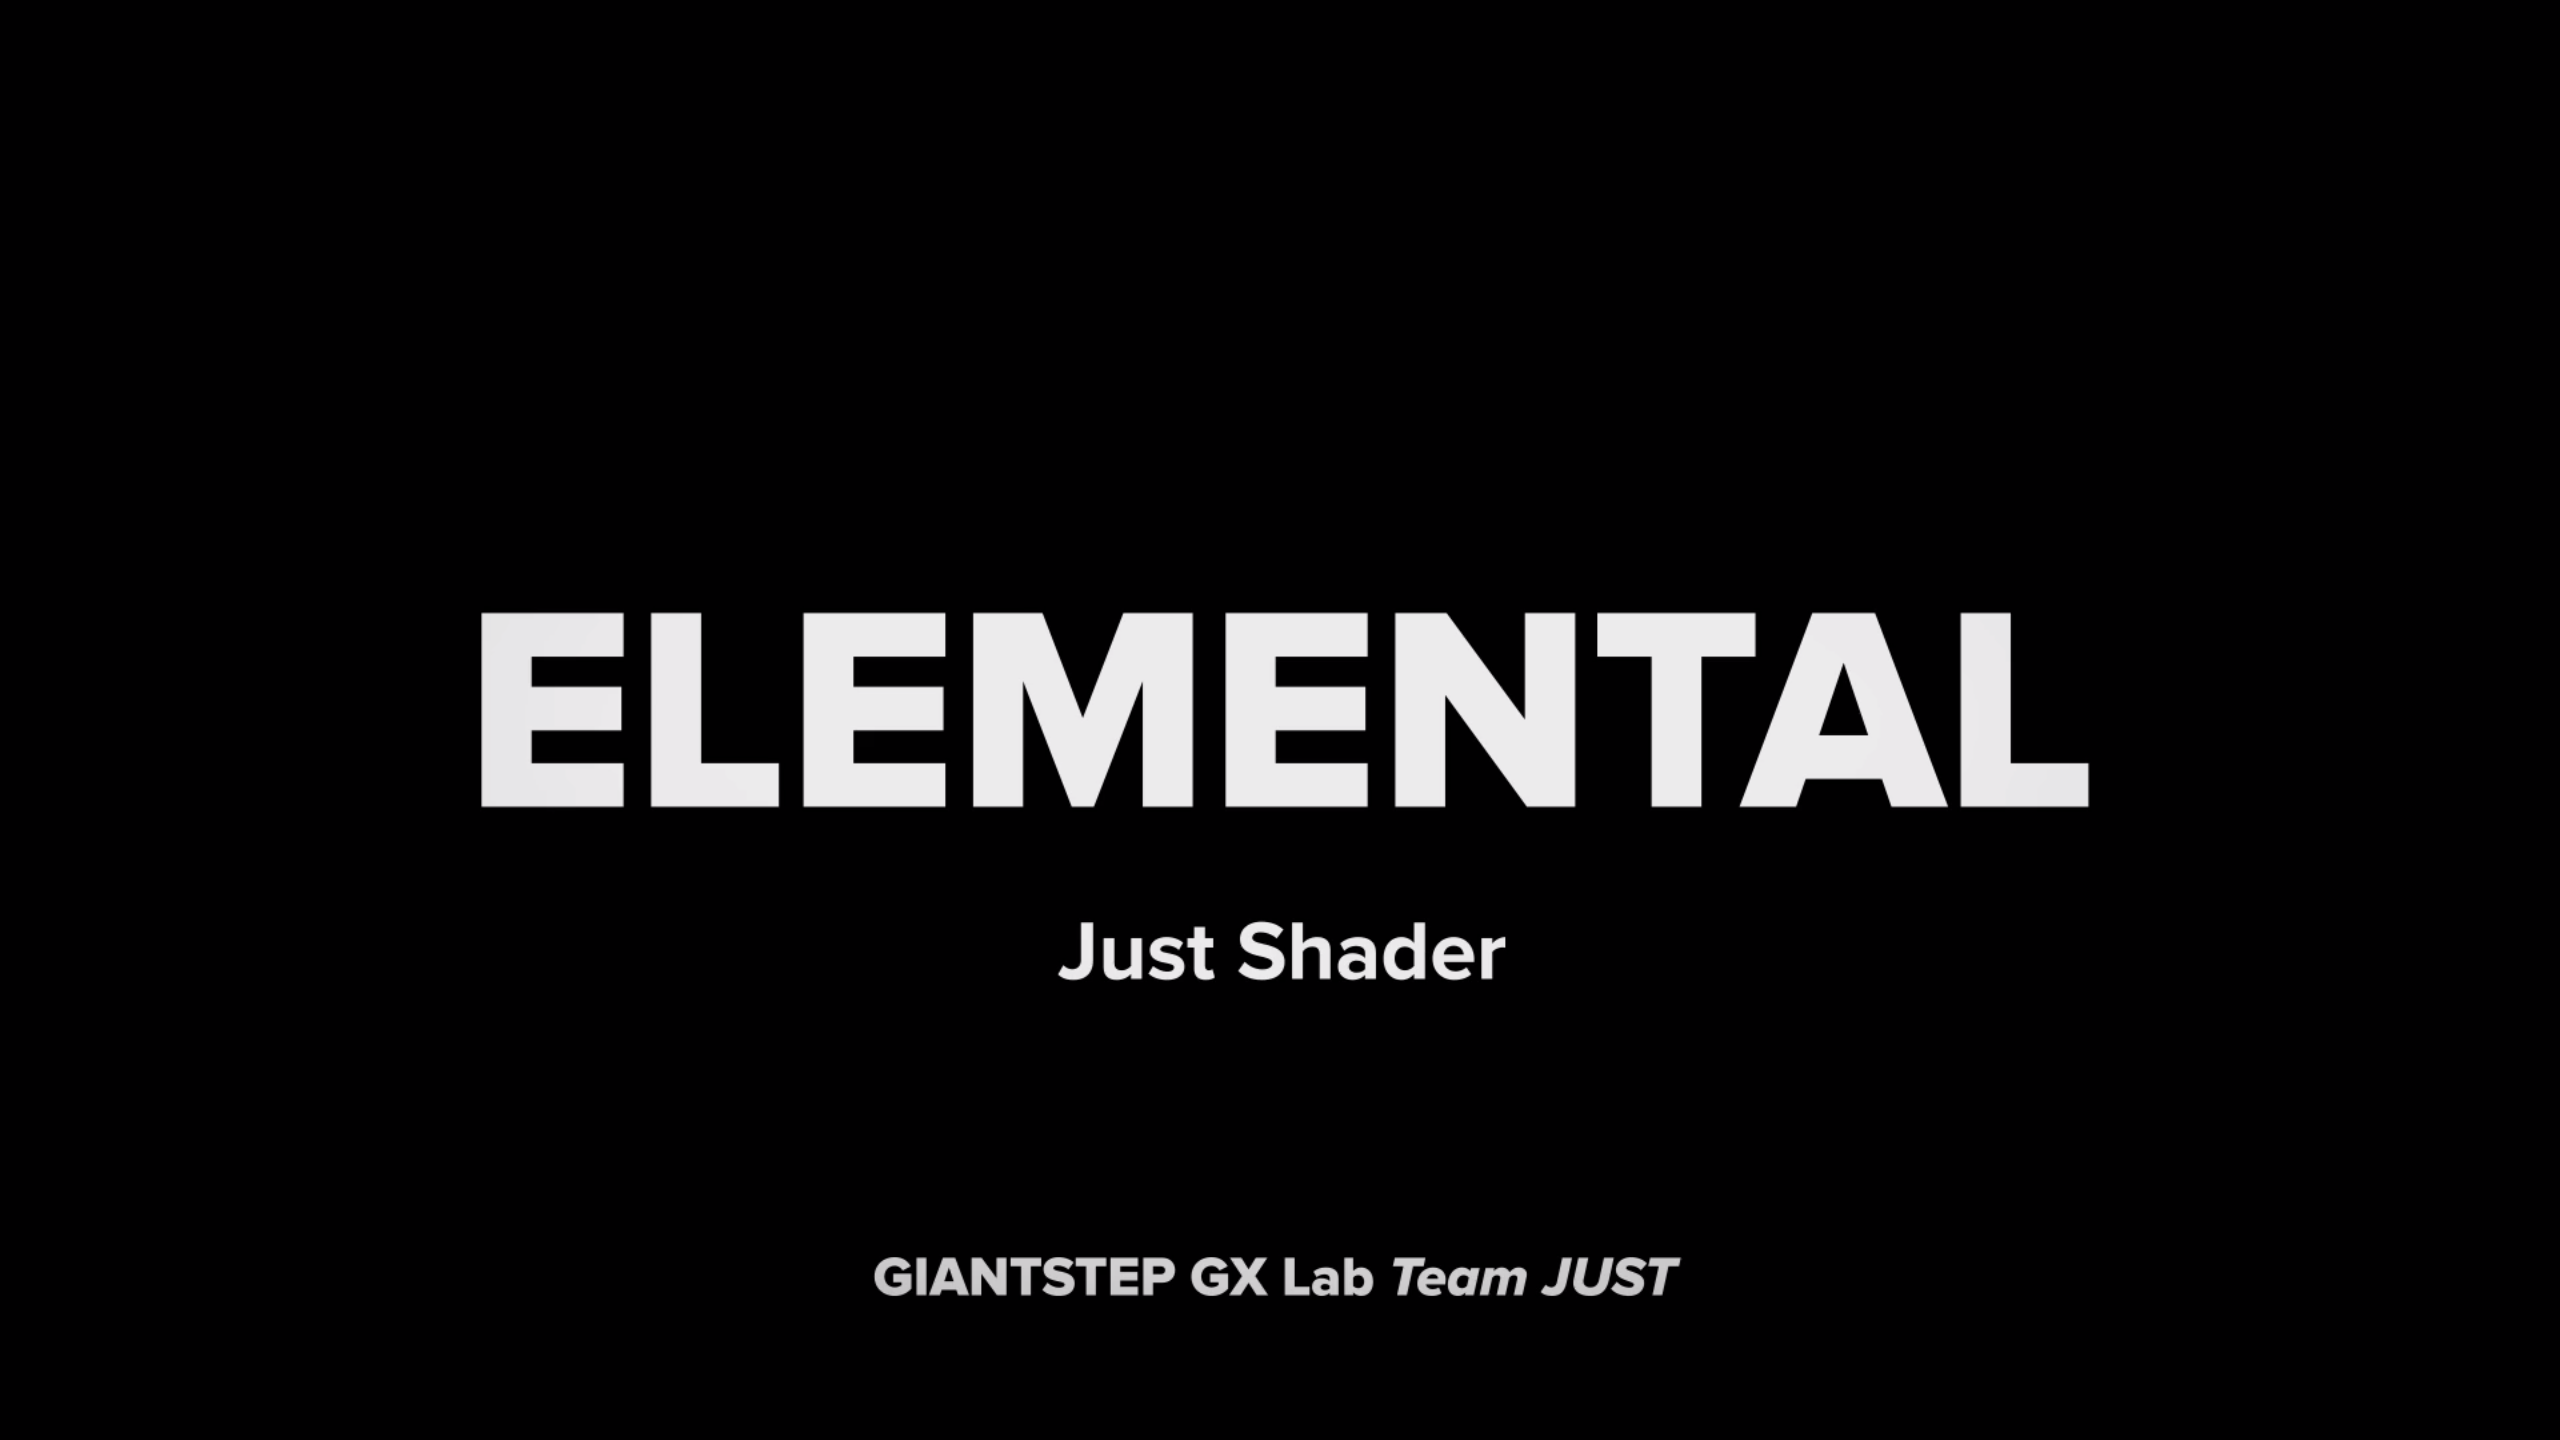 Just Shader 4th - Elemental